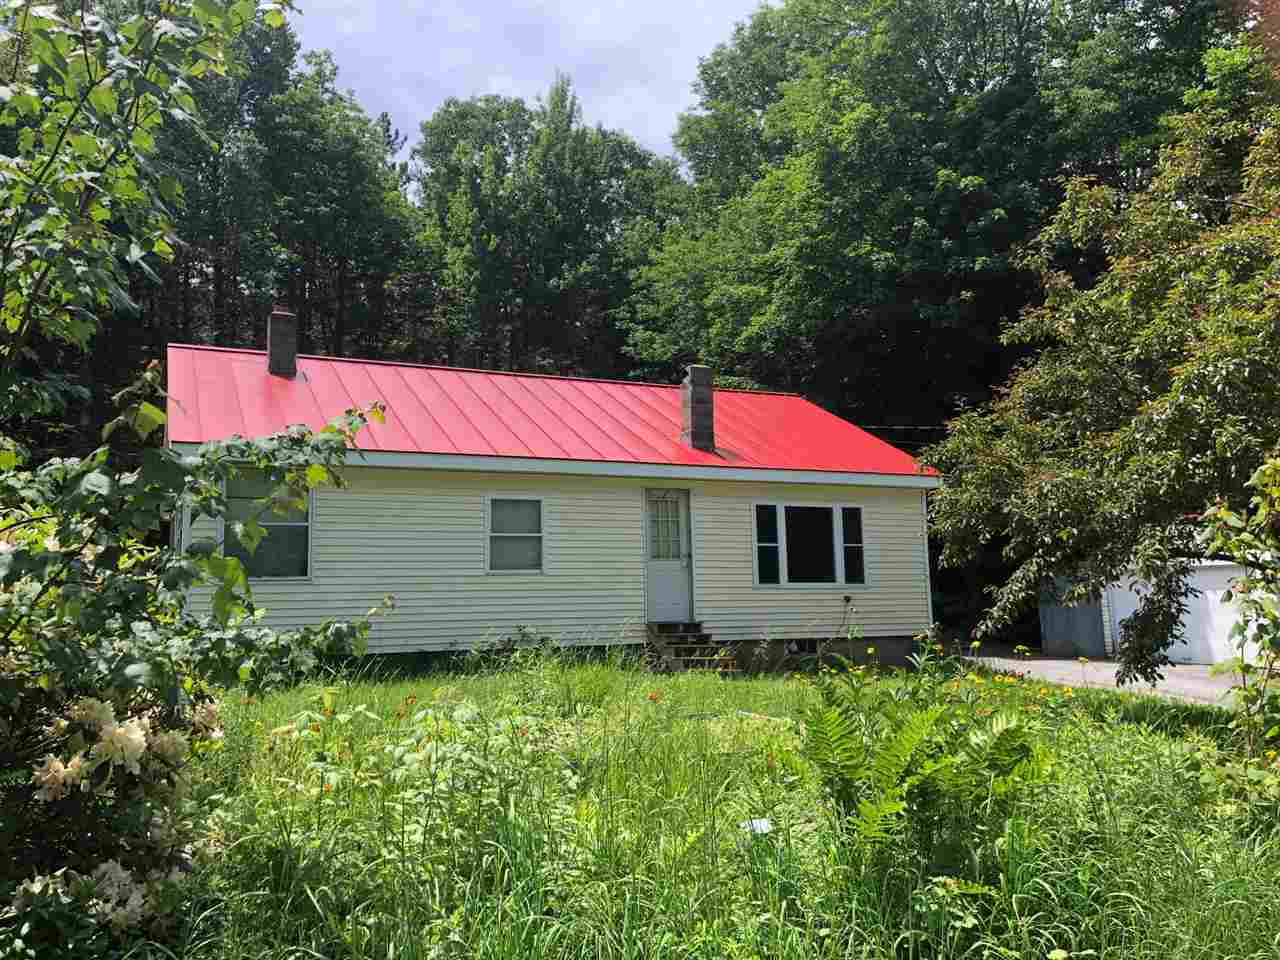 MLS 4762484: 85 Bradford Road, Sunapee NH